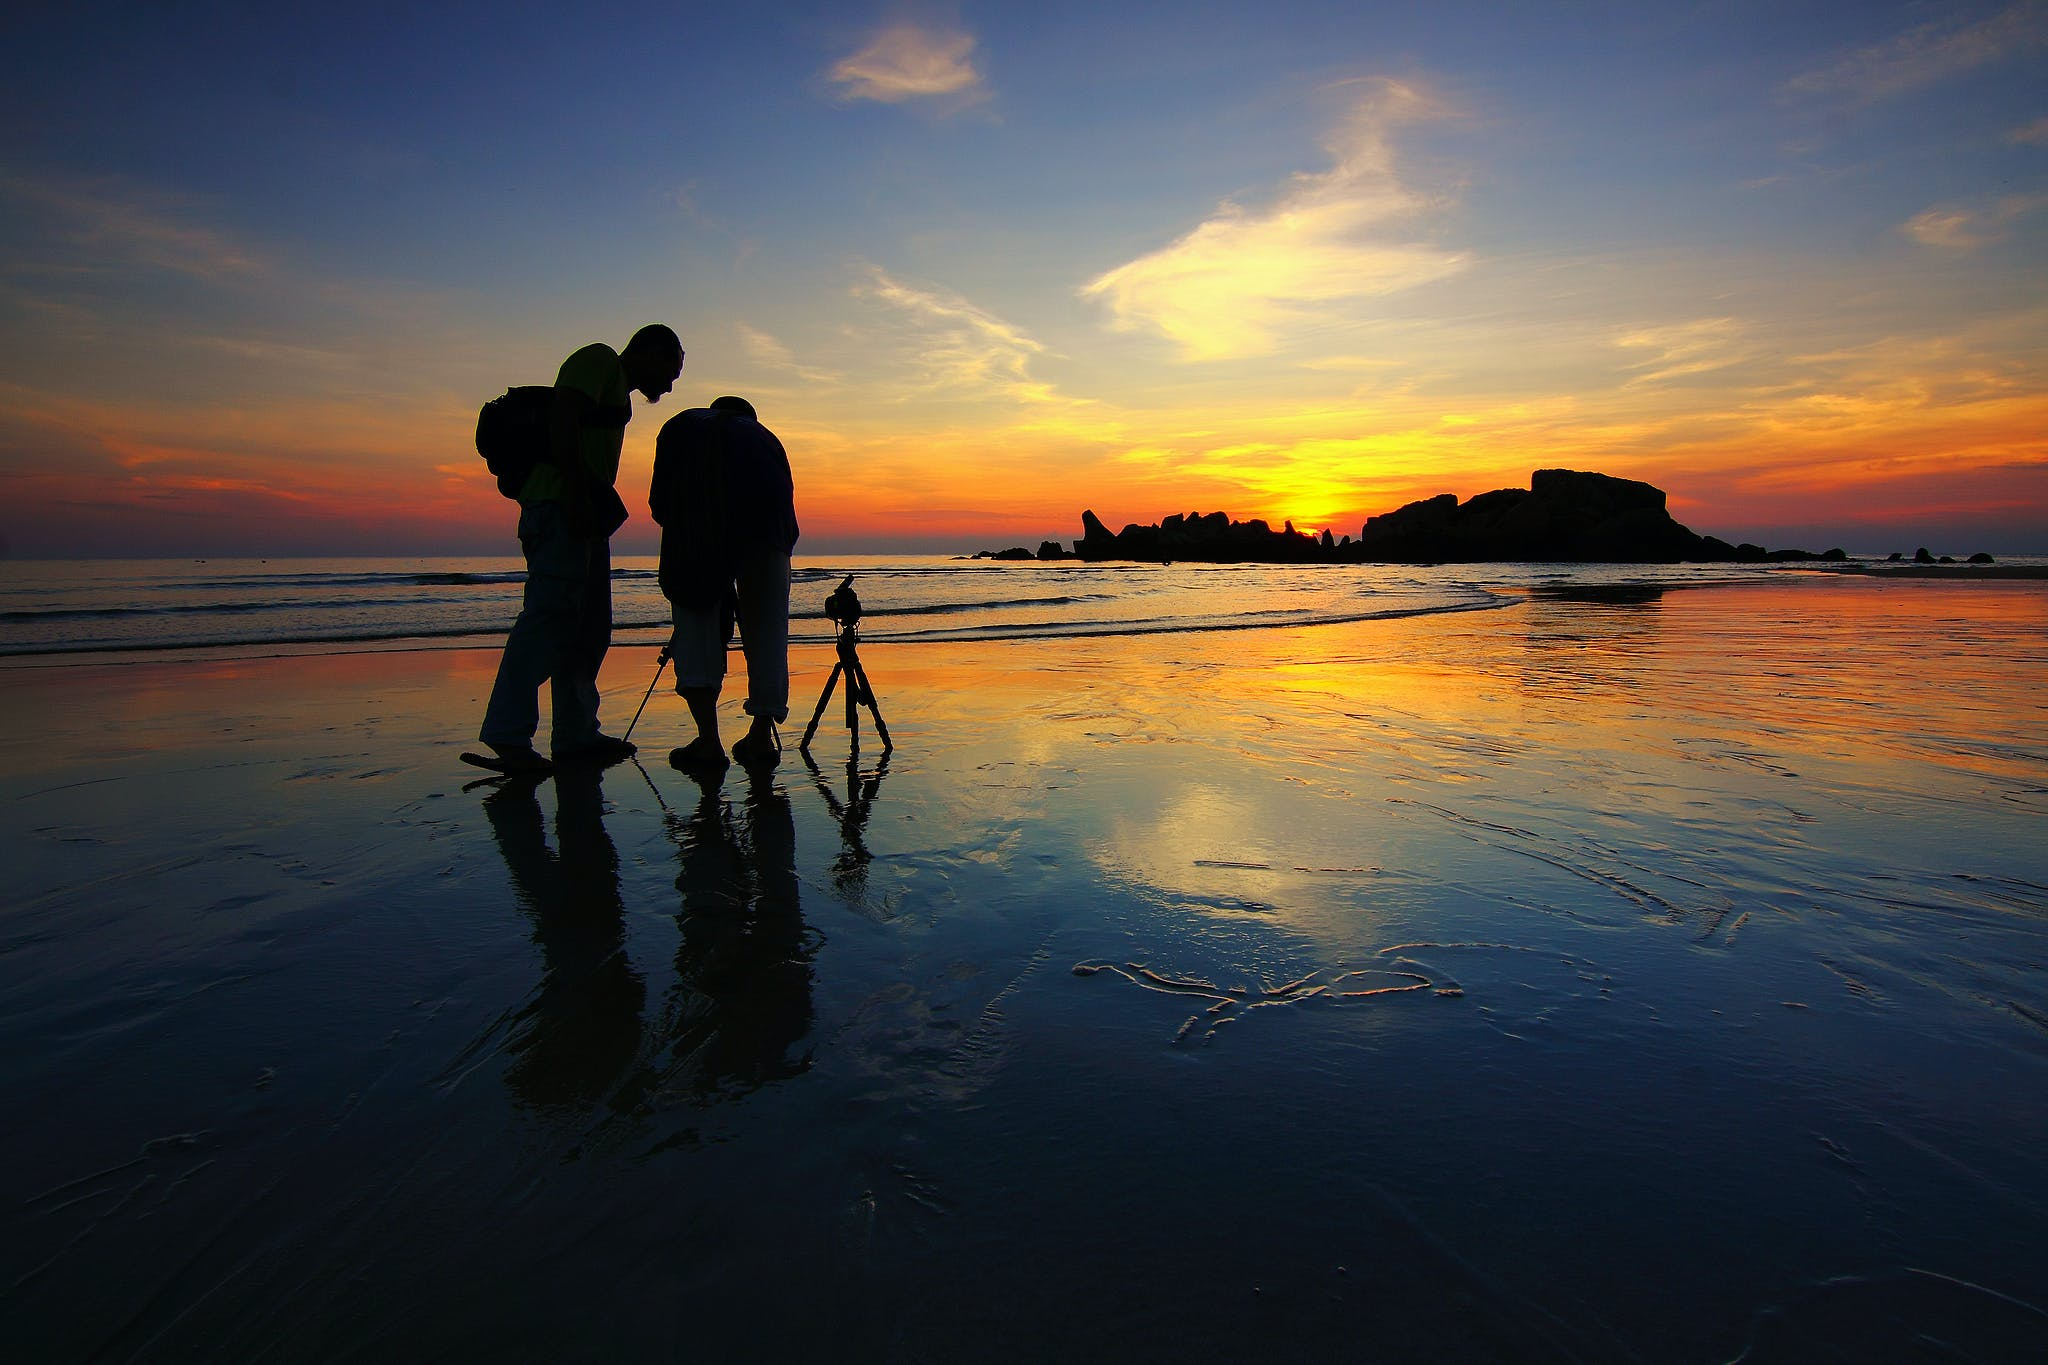 Silhouette of Two Person Taking Photo Near Shore during Golden Hour